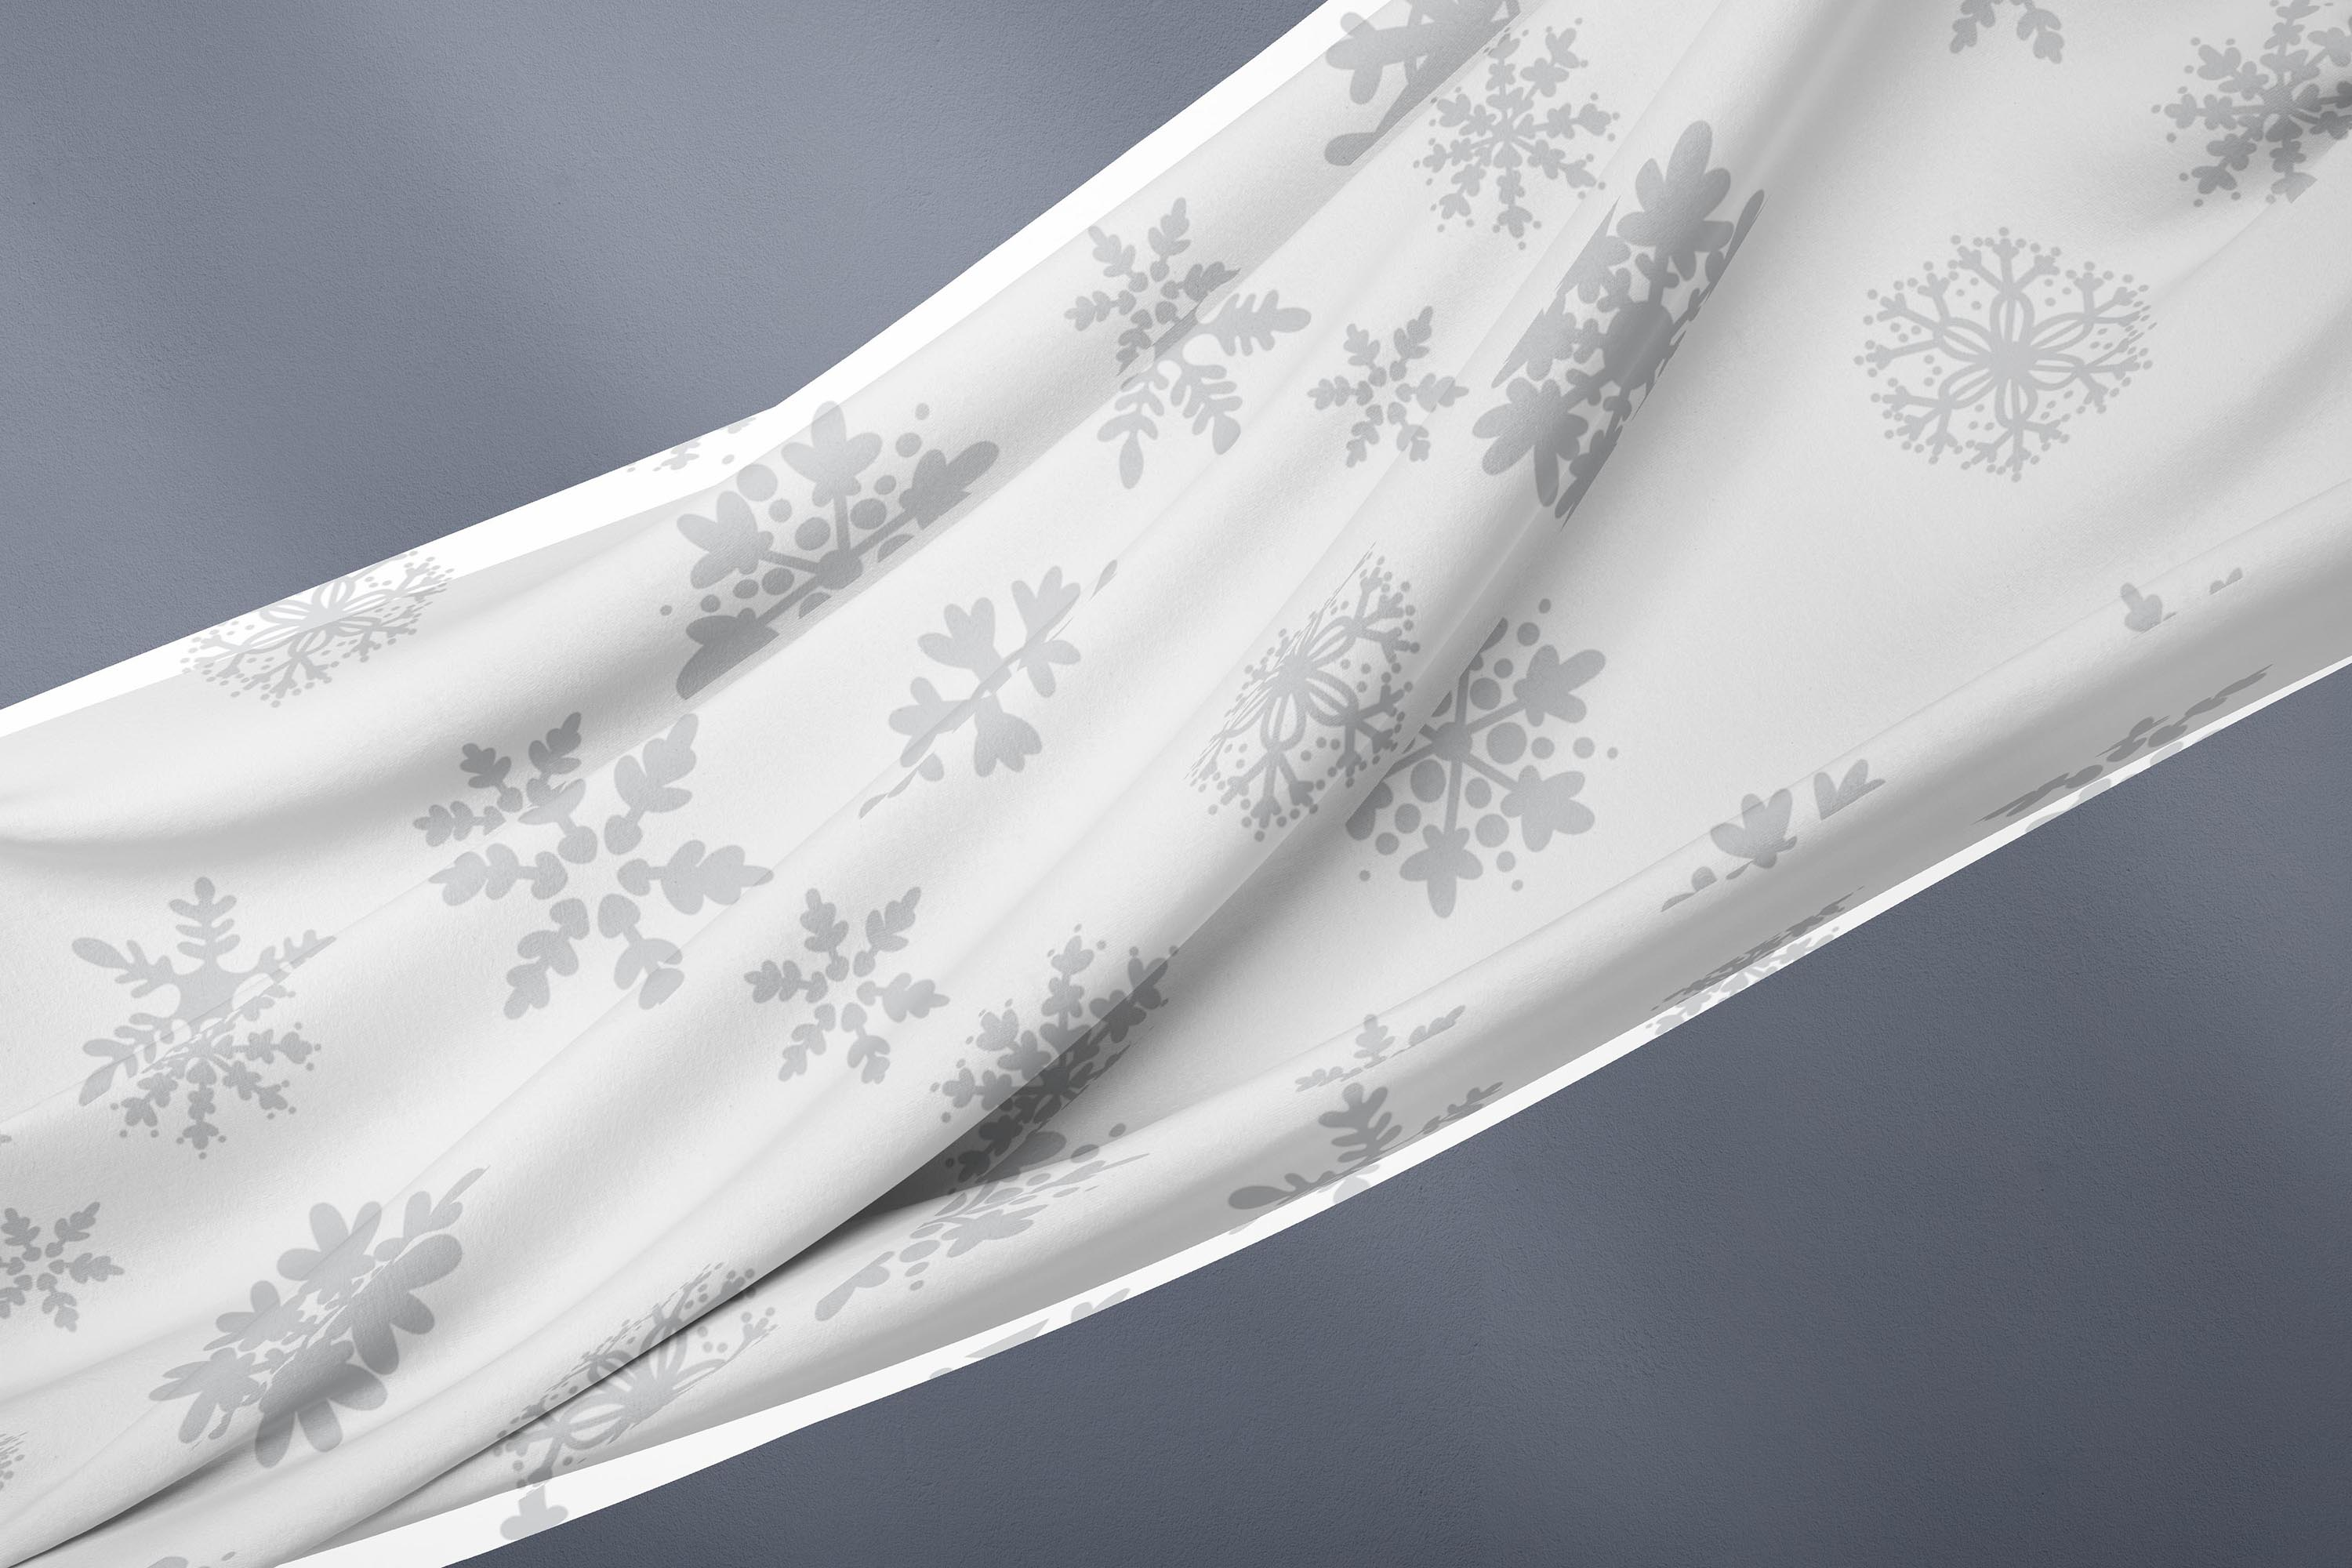 Cute Snowflakes - Winter Doodle Patterns example image 3